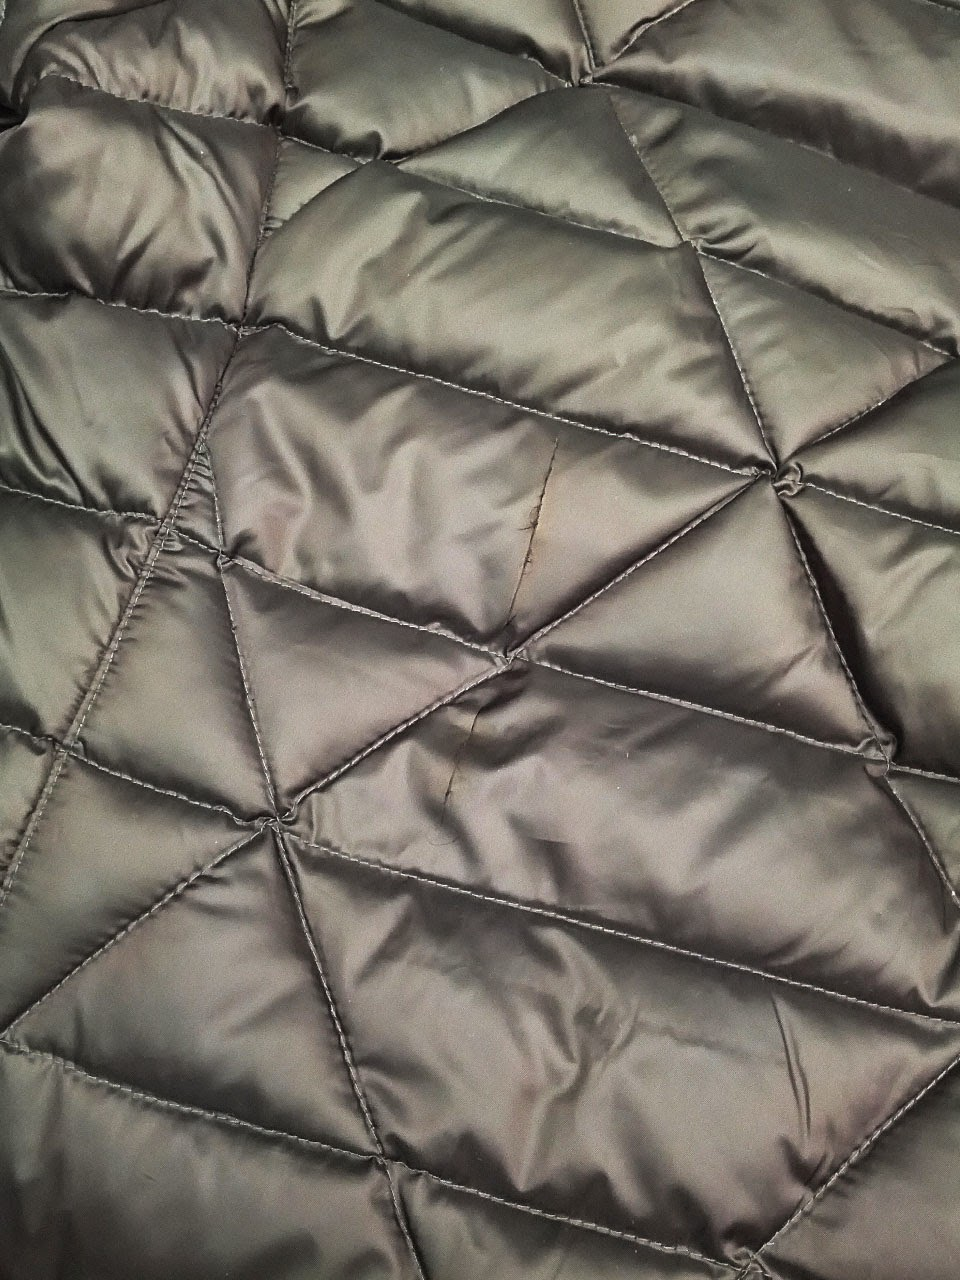 Leather jacket repair vancouver - Look At The Following Picture Of A Very New Puffer Jacket There S A Big Cut Down The Backside